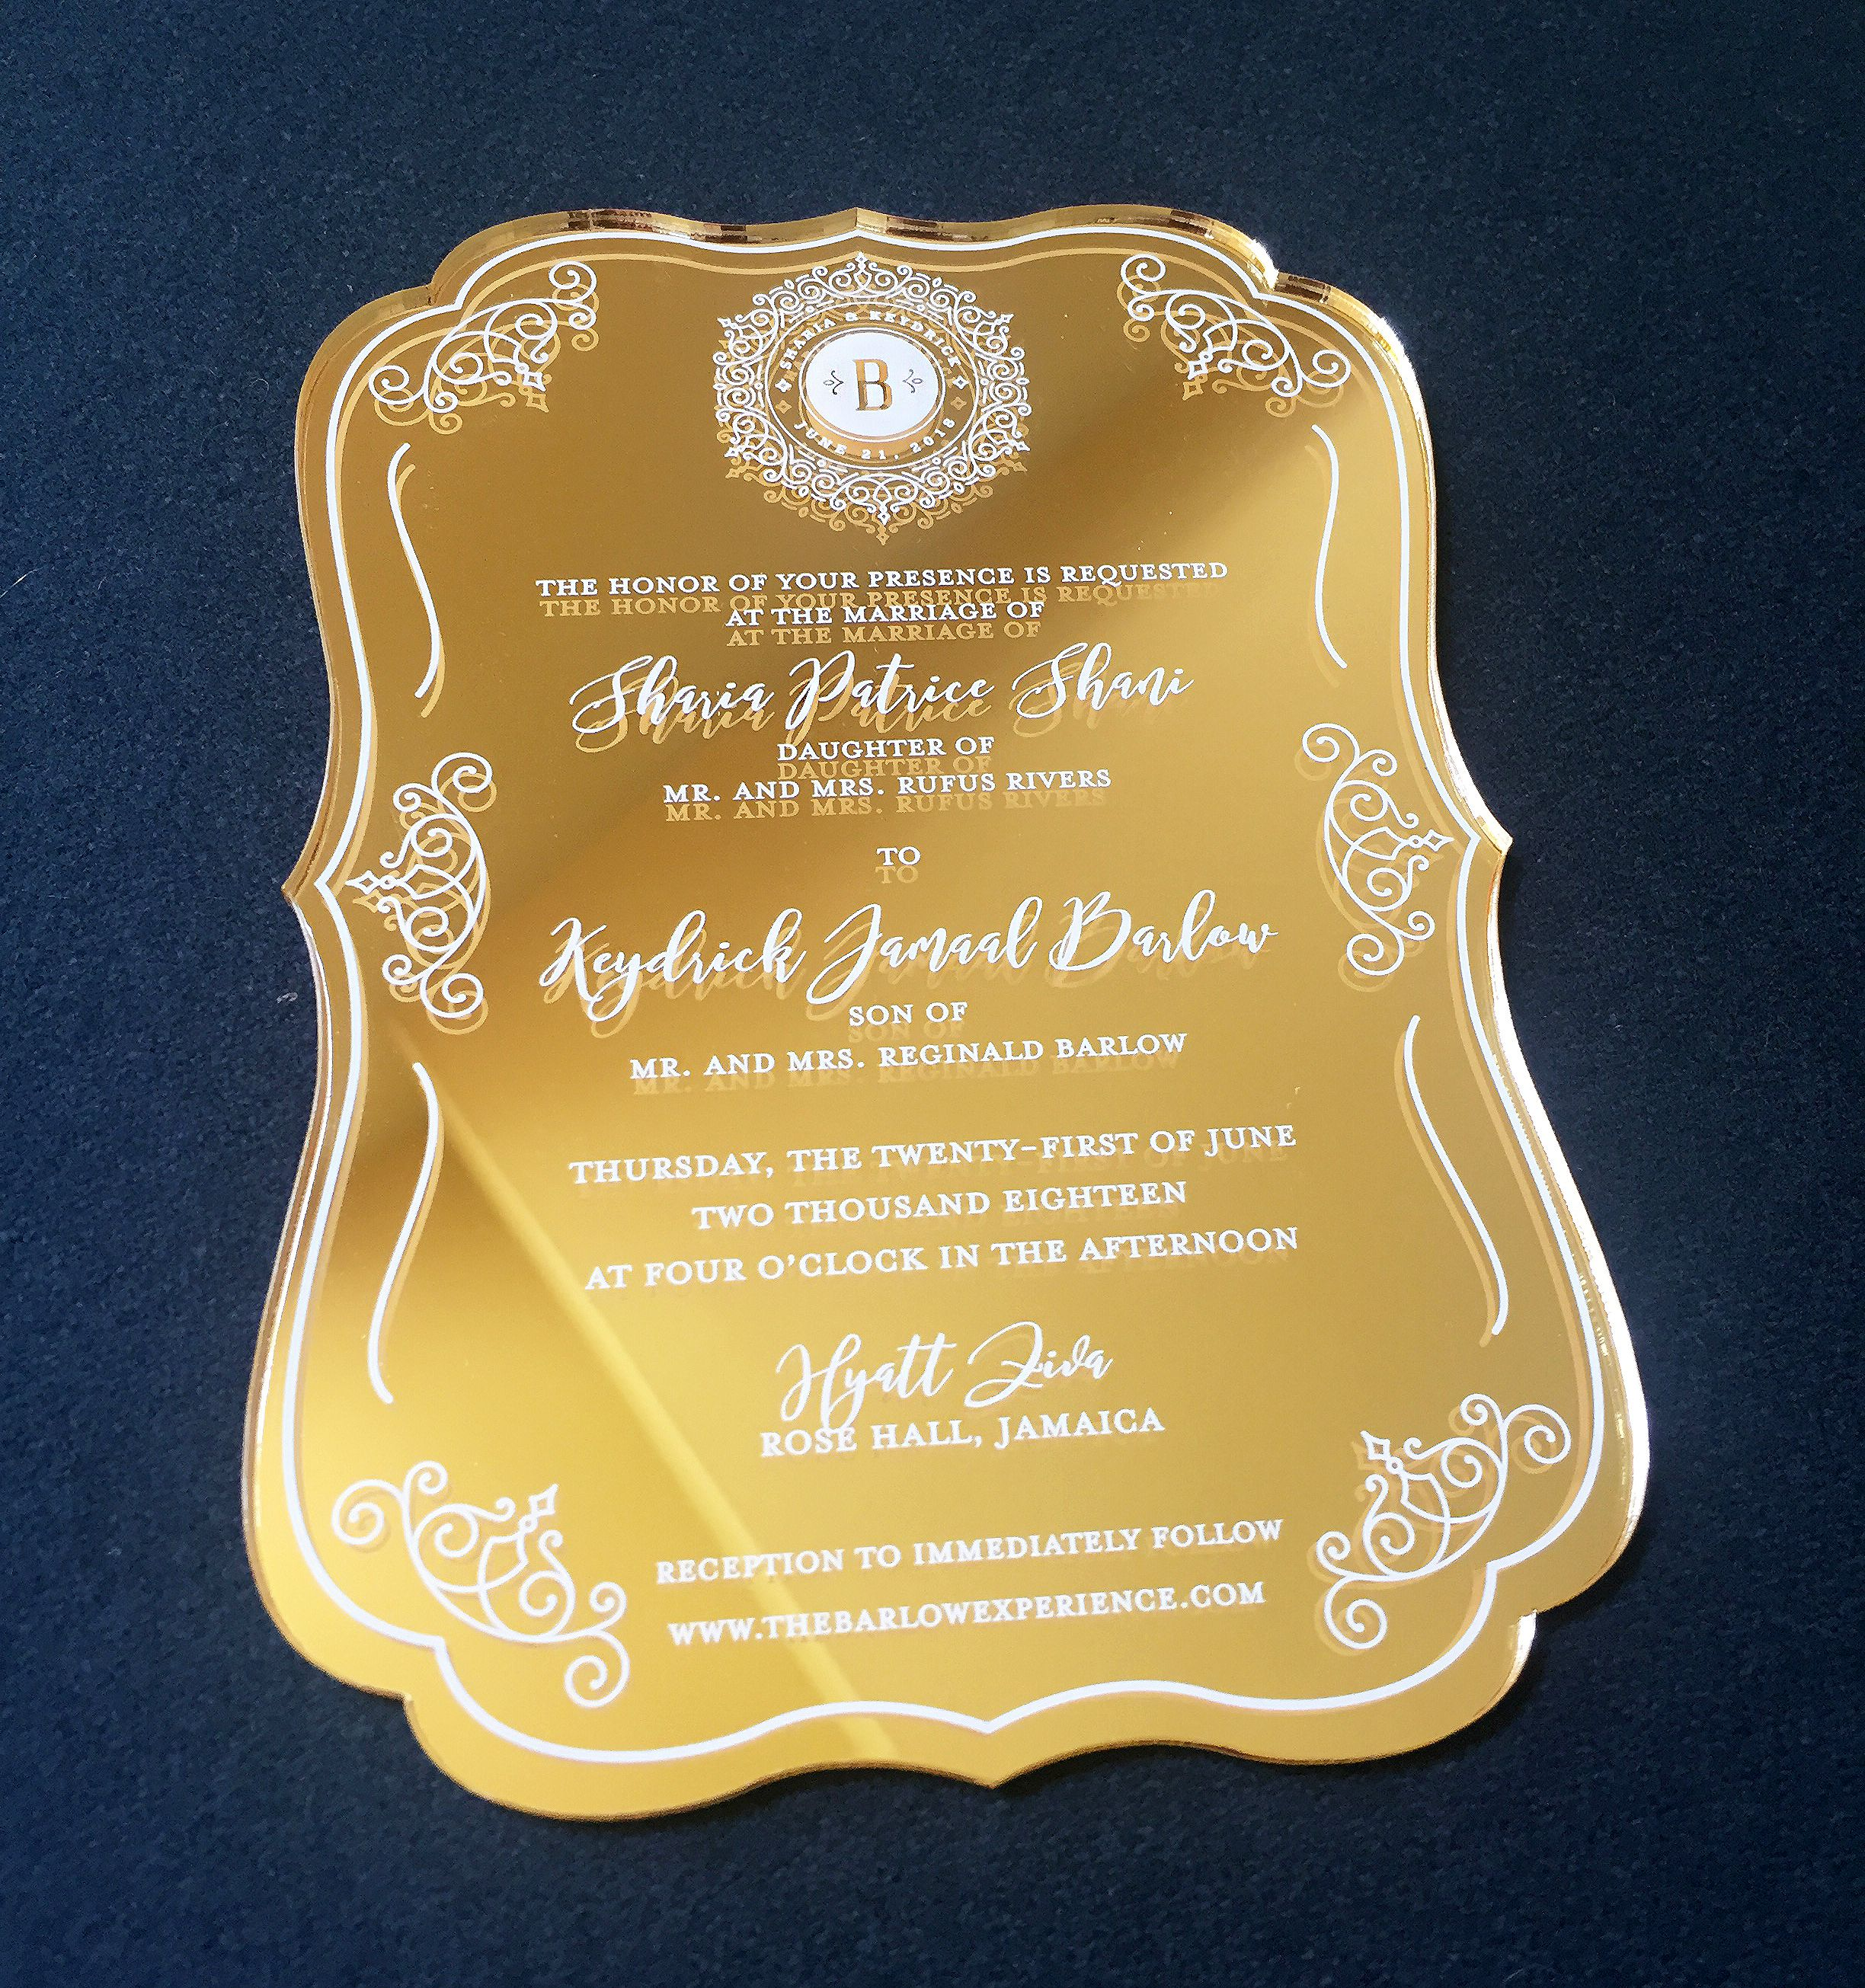 Mirrored gold acrylic invitation with white screen print. 😍 We